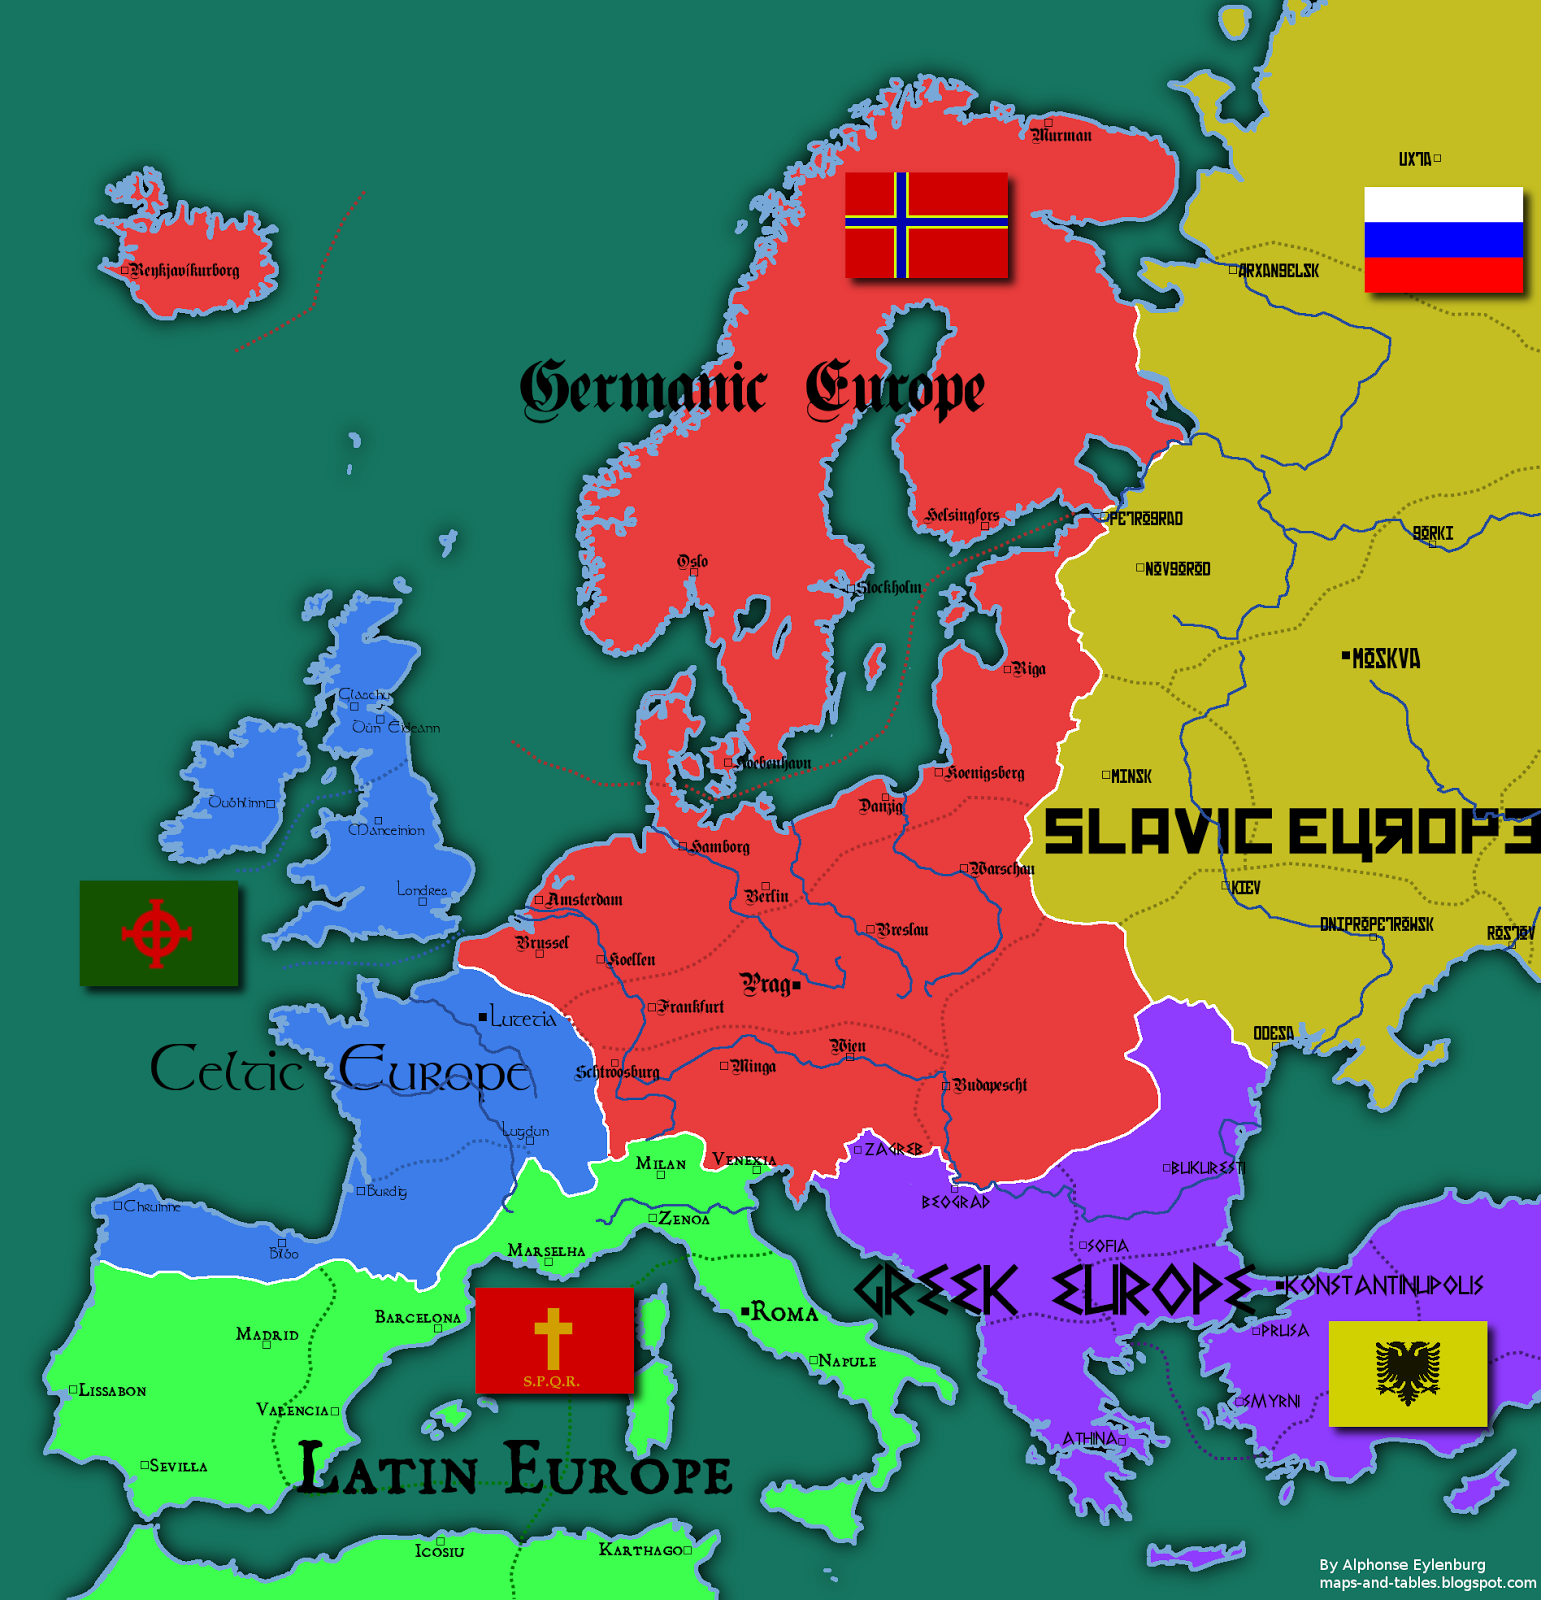 Map Of Europe With Provinces.Maps And Tables 4 Maps Of An Alternative Europe